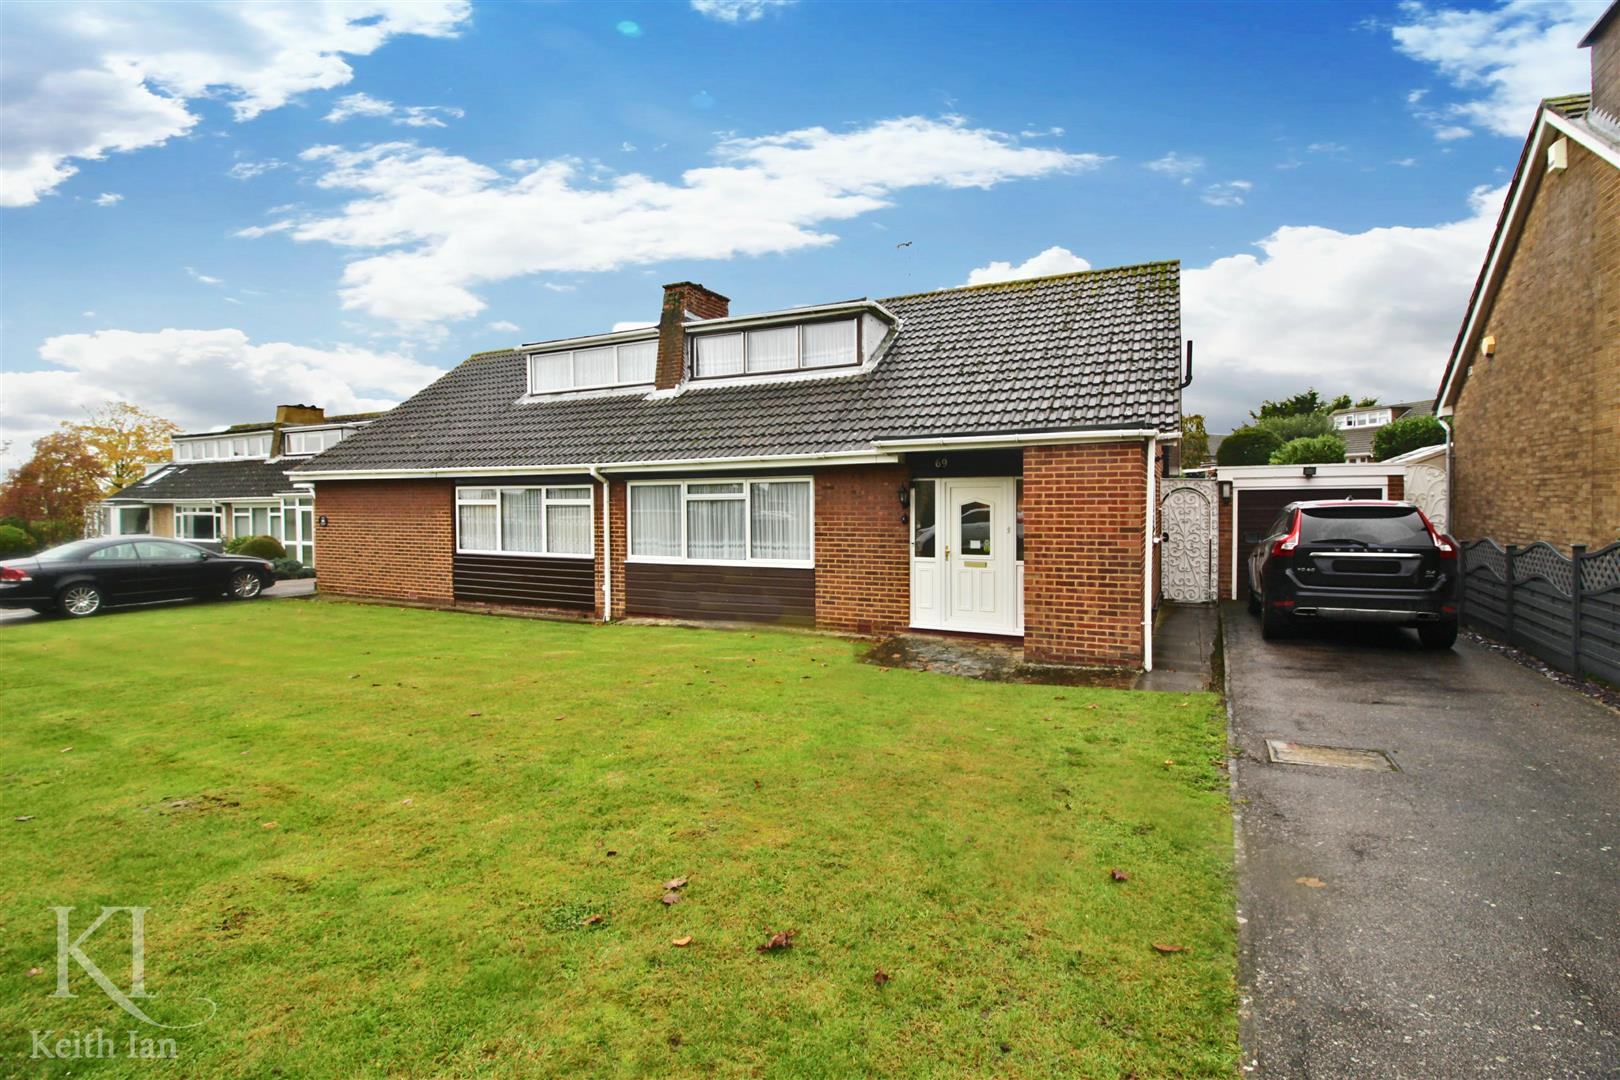 Holbeck Lane, Cheshunt - 2 Bedroom Chalet Bungalow With Lots Of Potential To Extend